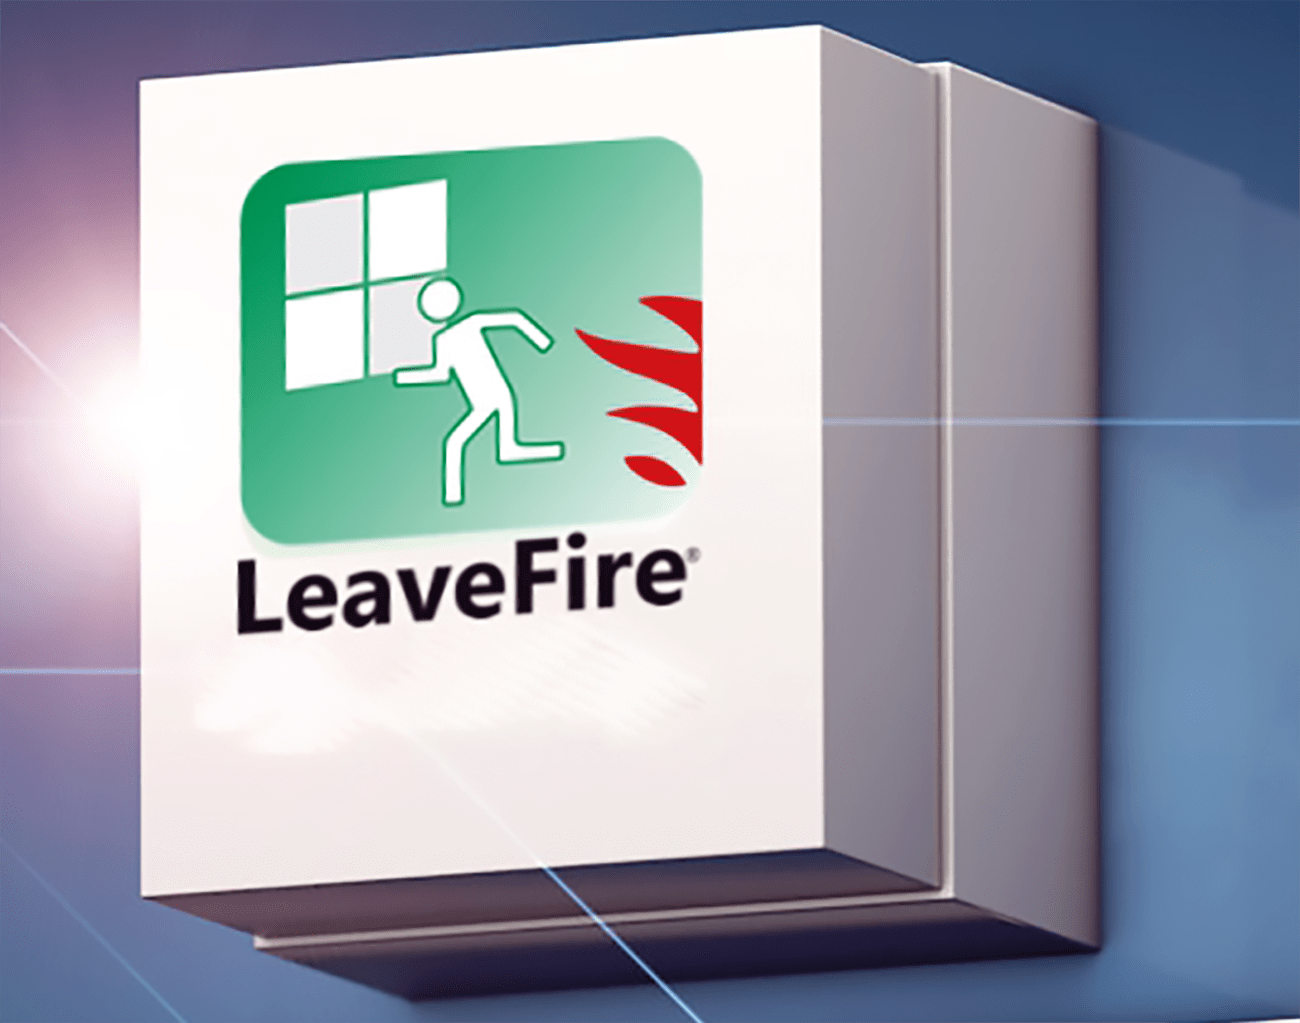 LeaveFire – The innovative escape system